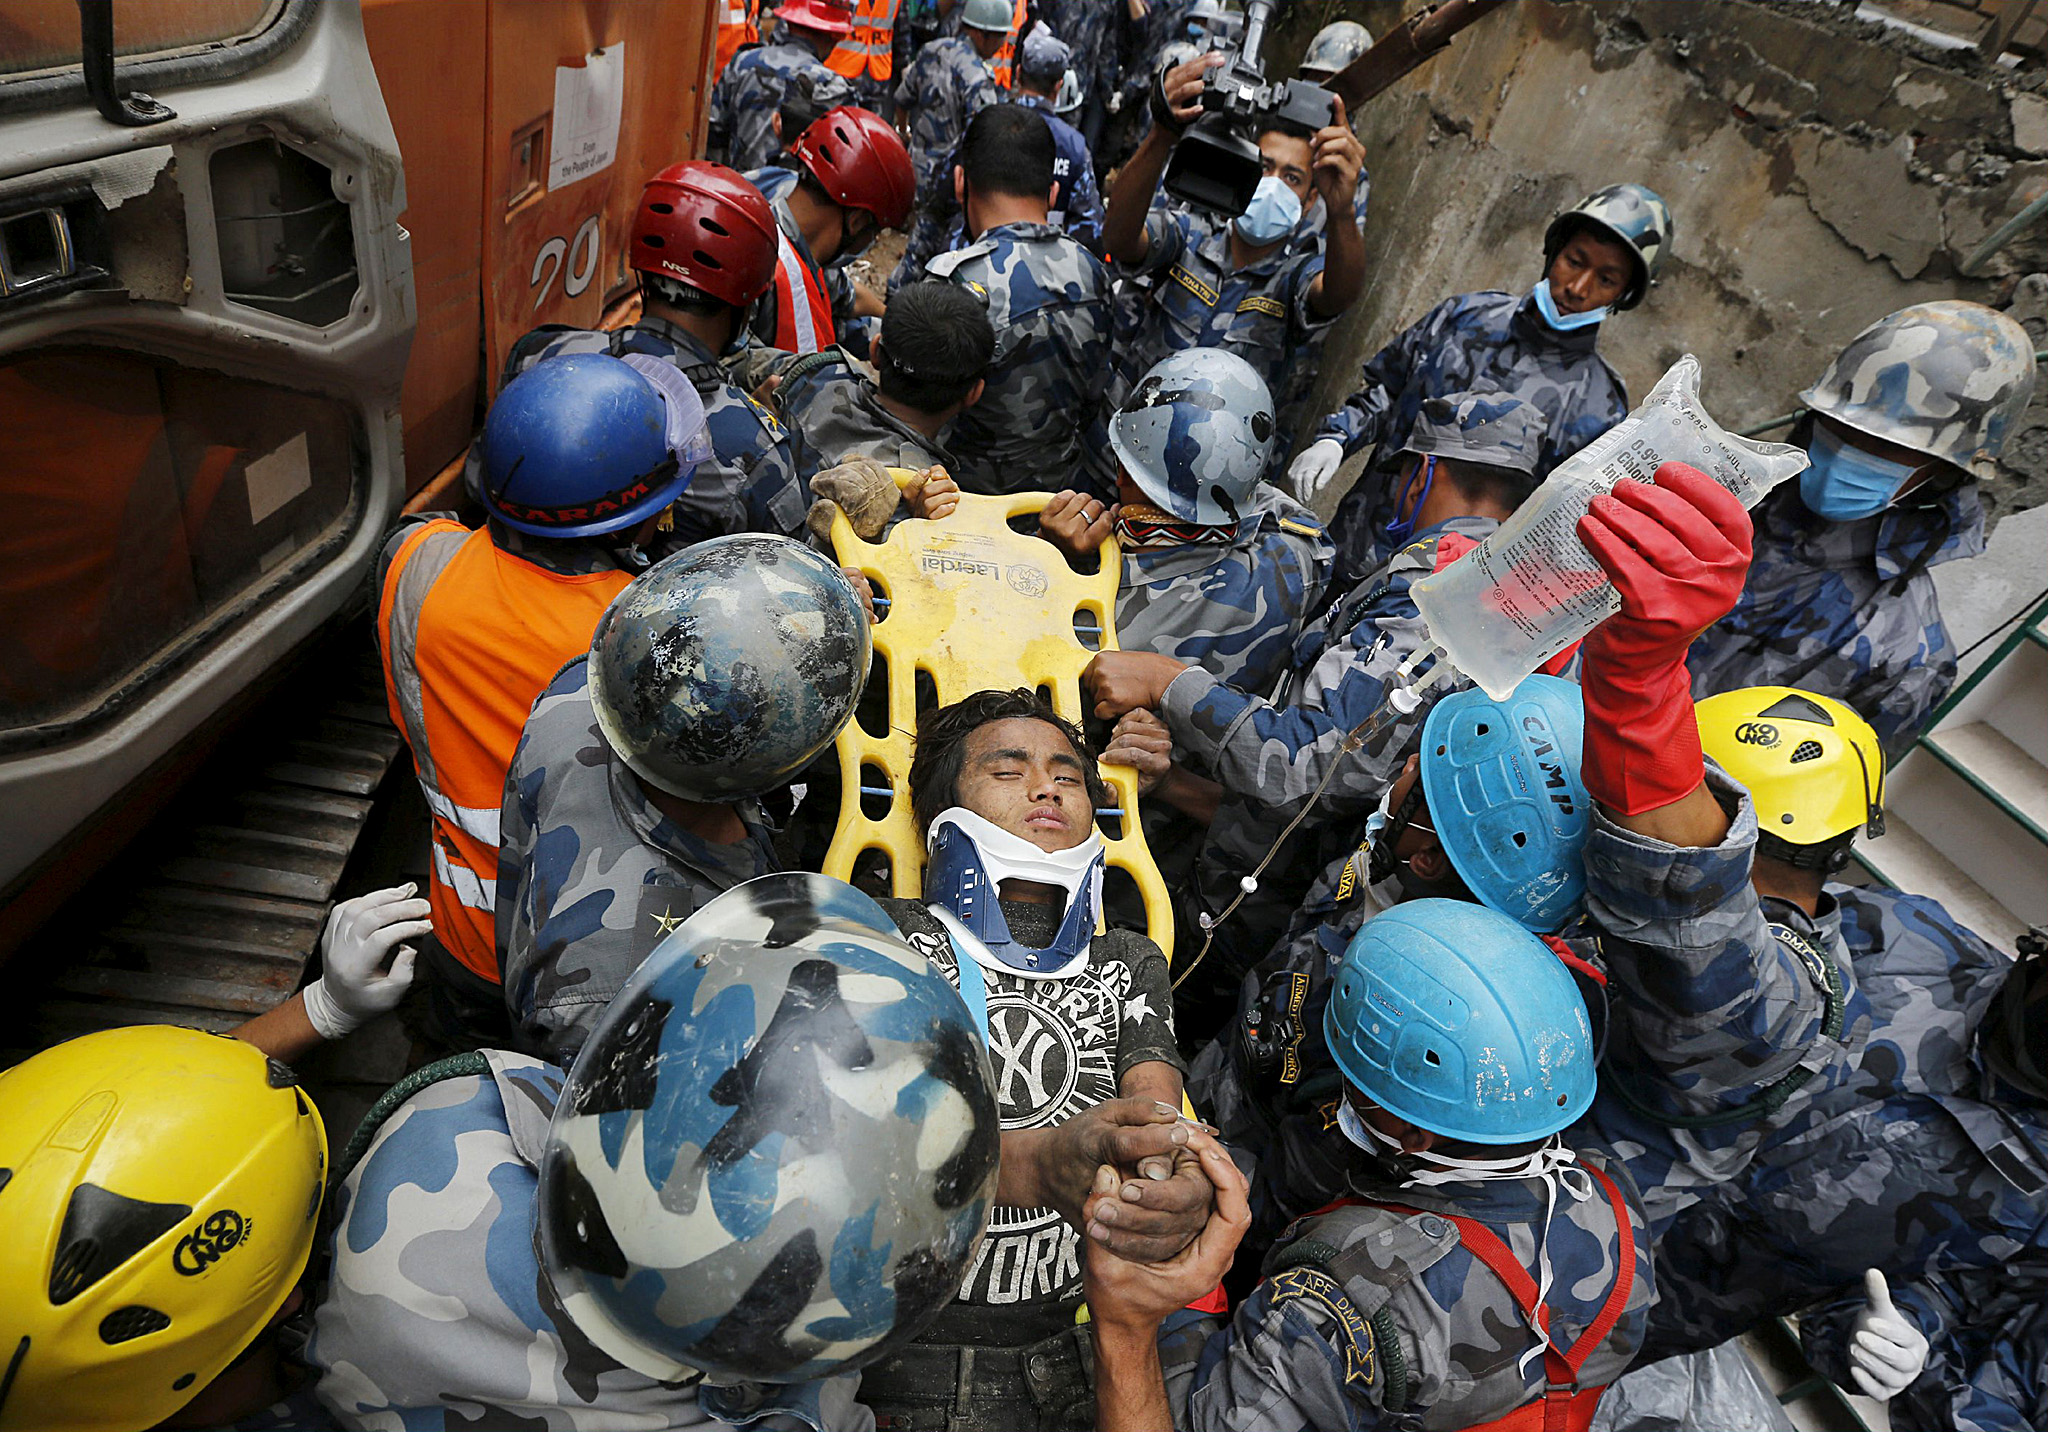 "Earthquake survivor is rescued by the Armed Police Force from the collapsed Hilton Hotel, the result of an earthquake in Kathmandu...ATTENTION EDITORS - REUTERS PICTURE HIGHLIGHT Earthquake survivor Pema Lama, 15, is rescued by the Armed Police Force from the collapsed Hilton Hotel, the result of an earthquake in Kathmandu, Nepal April 30, 2015. REUTERS/Adnan Abidi      TPX IMAGES OF THE DAY REUTERS NEWS PICTURES HAS NOW MADE IT EASIER TO FIND THE BEST PHOTOS FROM THE MOST IMPORTANT STORIES AND TOP STANDALONES EACH DAY. Search for ""TPX"" in the IPTC Supplemental Category field or ""IMAGES OF THE DAY"" in the Caption field and you will find a selection of 80-100 of our daily Top Pictures."